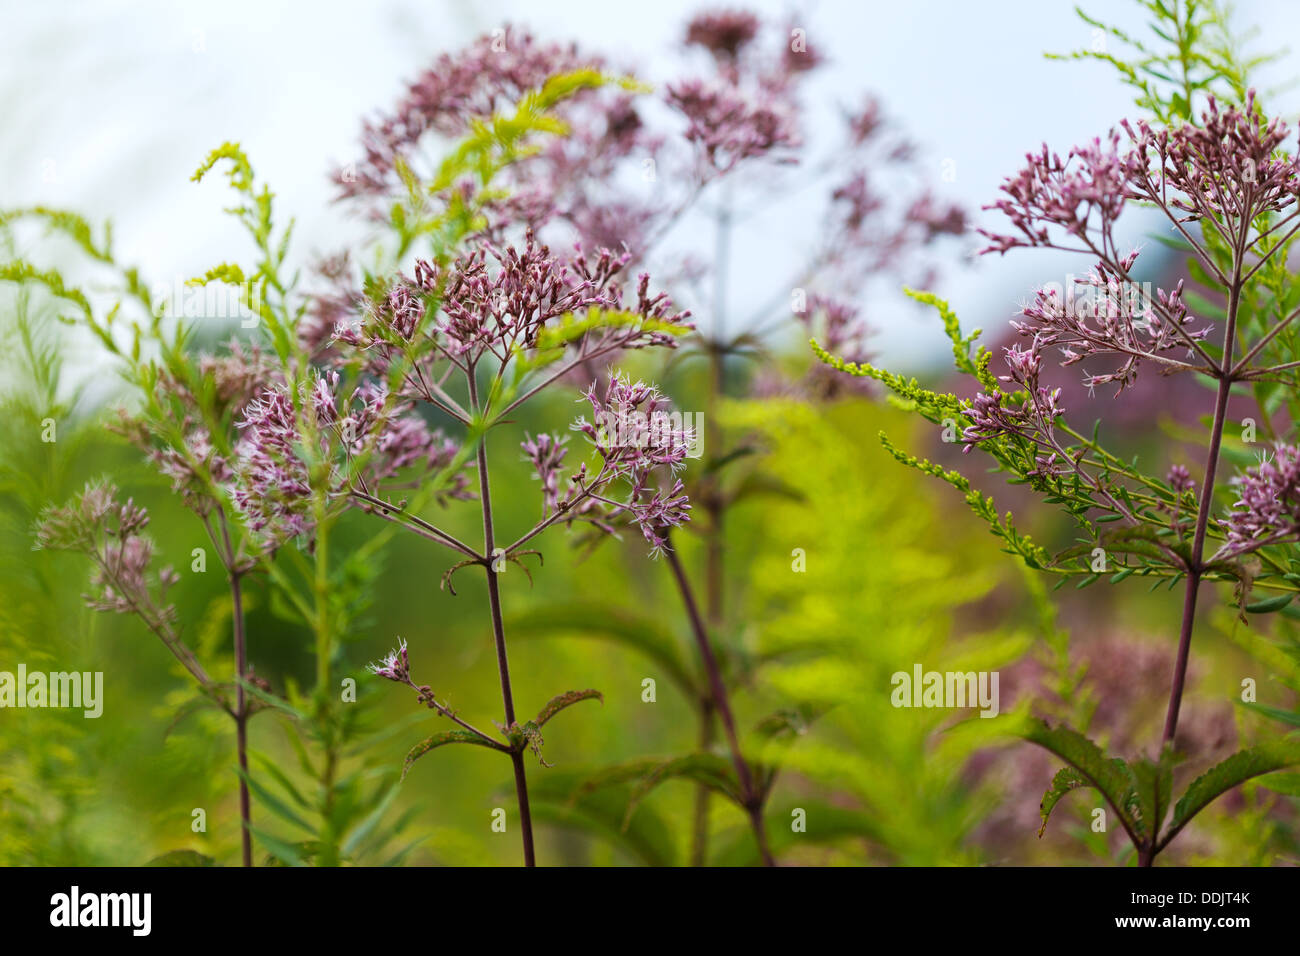 Joe-Pye Weed (Eutrochium) growing in a meadow - Stock Image